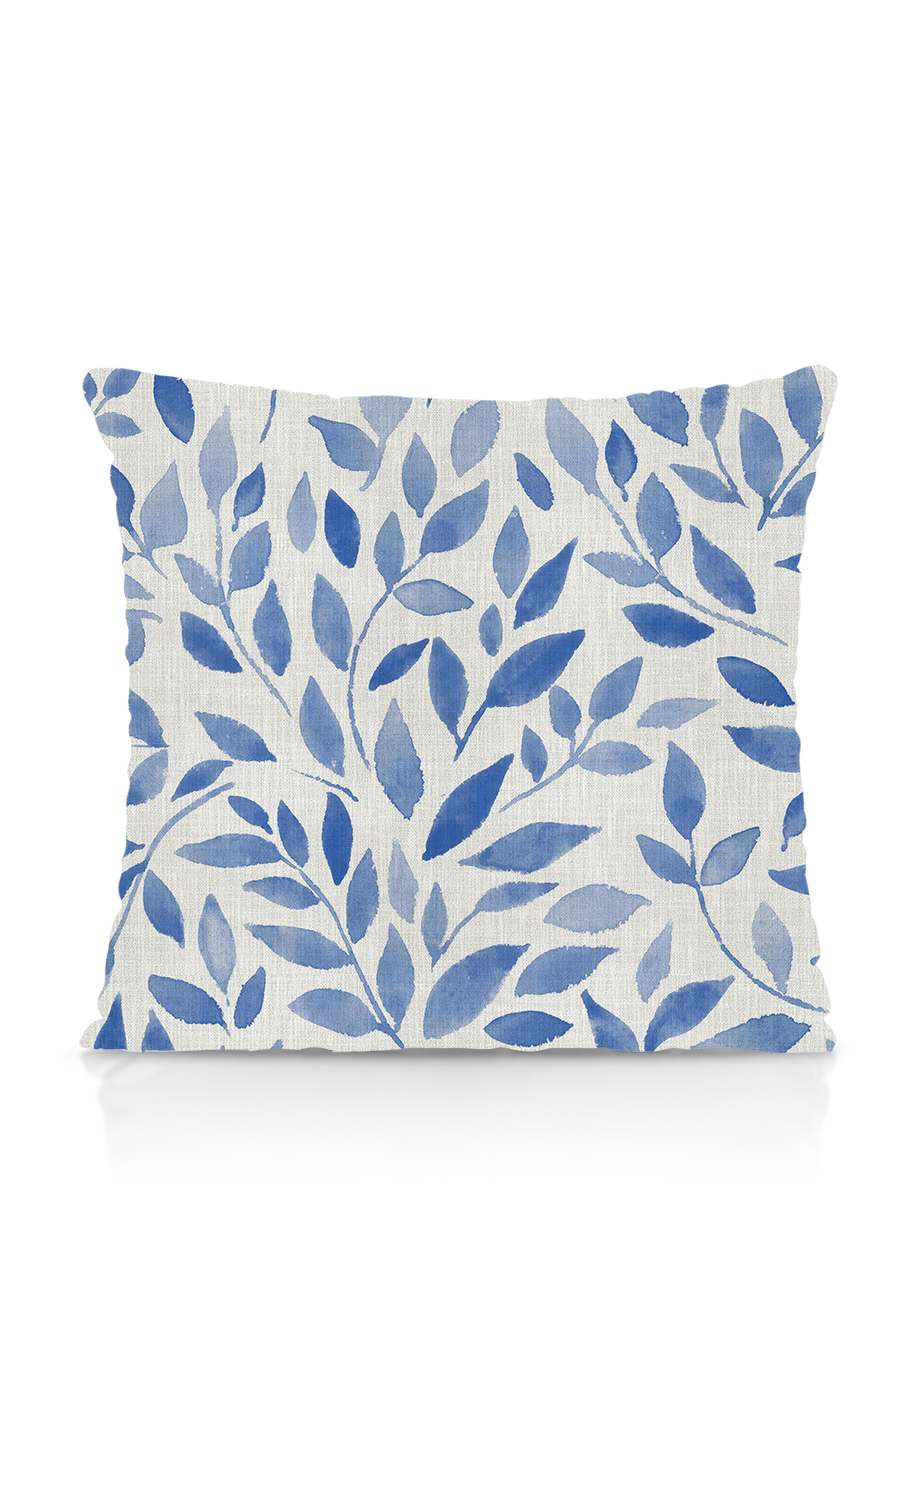 Floral Printed Custom Cushions For Dining Room